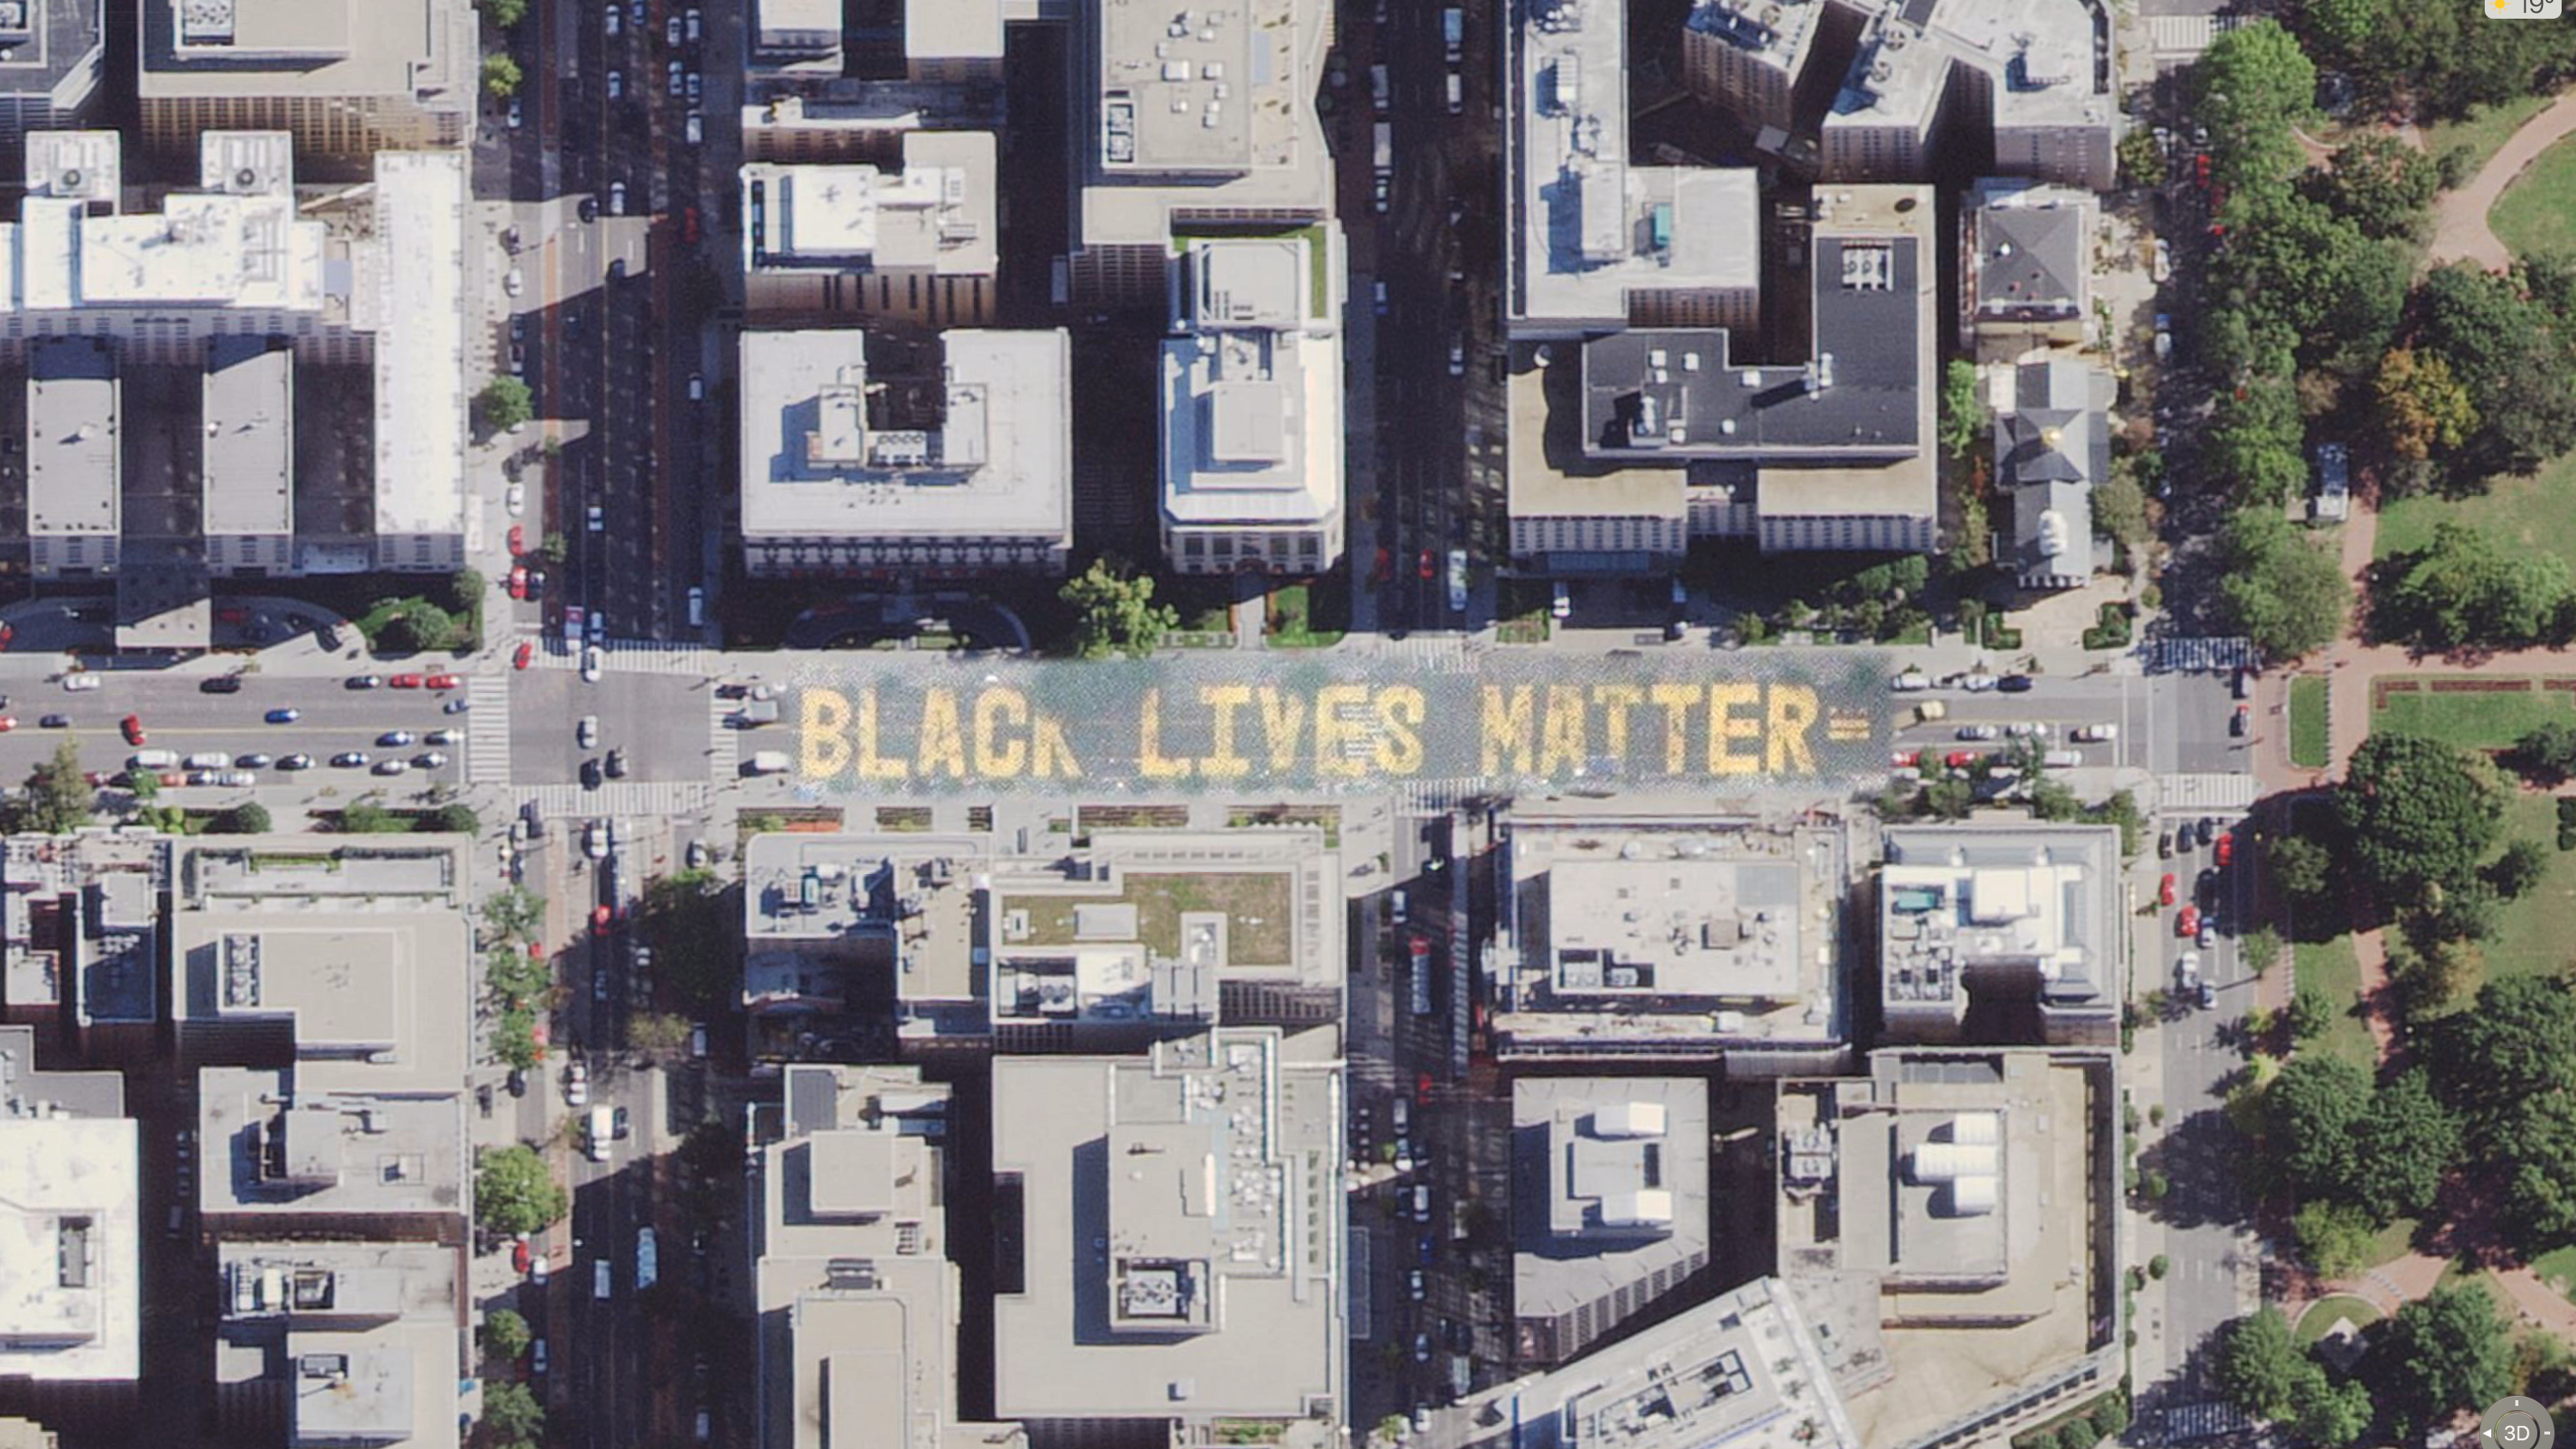 Apple oppdaterte Apple Maps for å få med «Black lives matter»